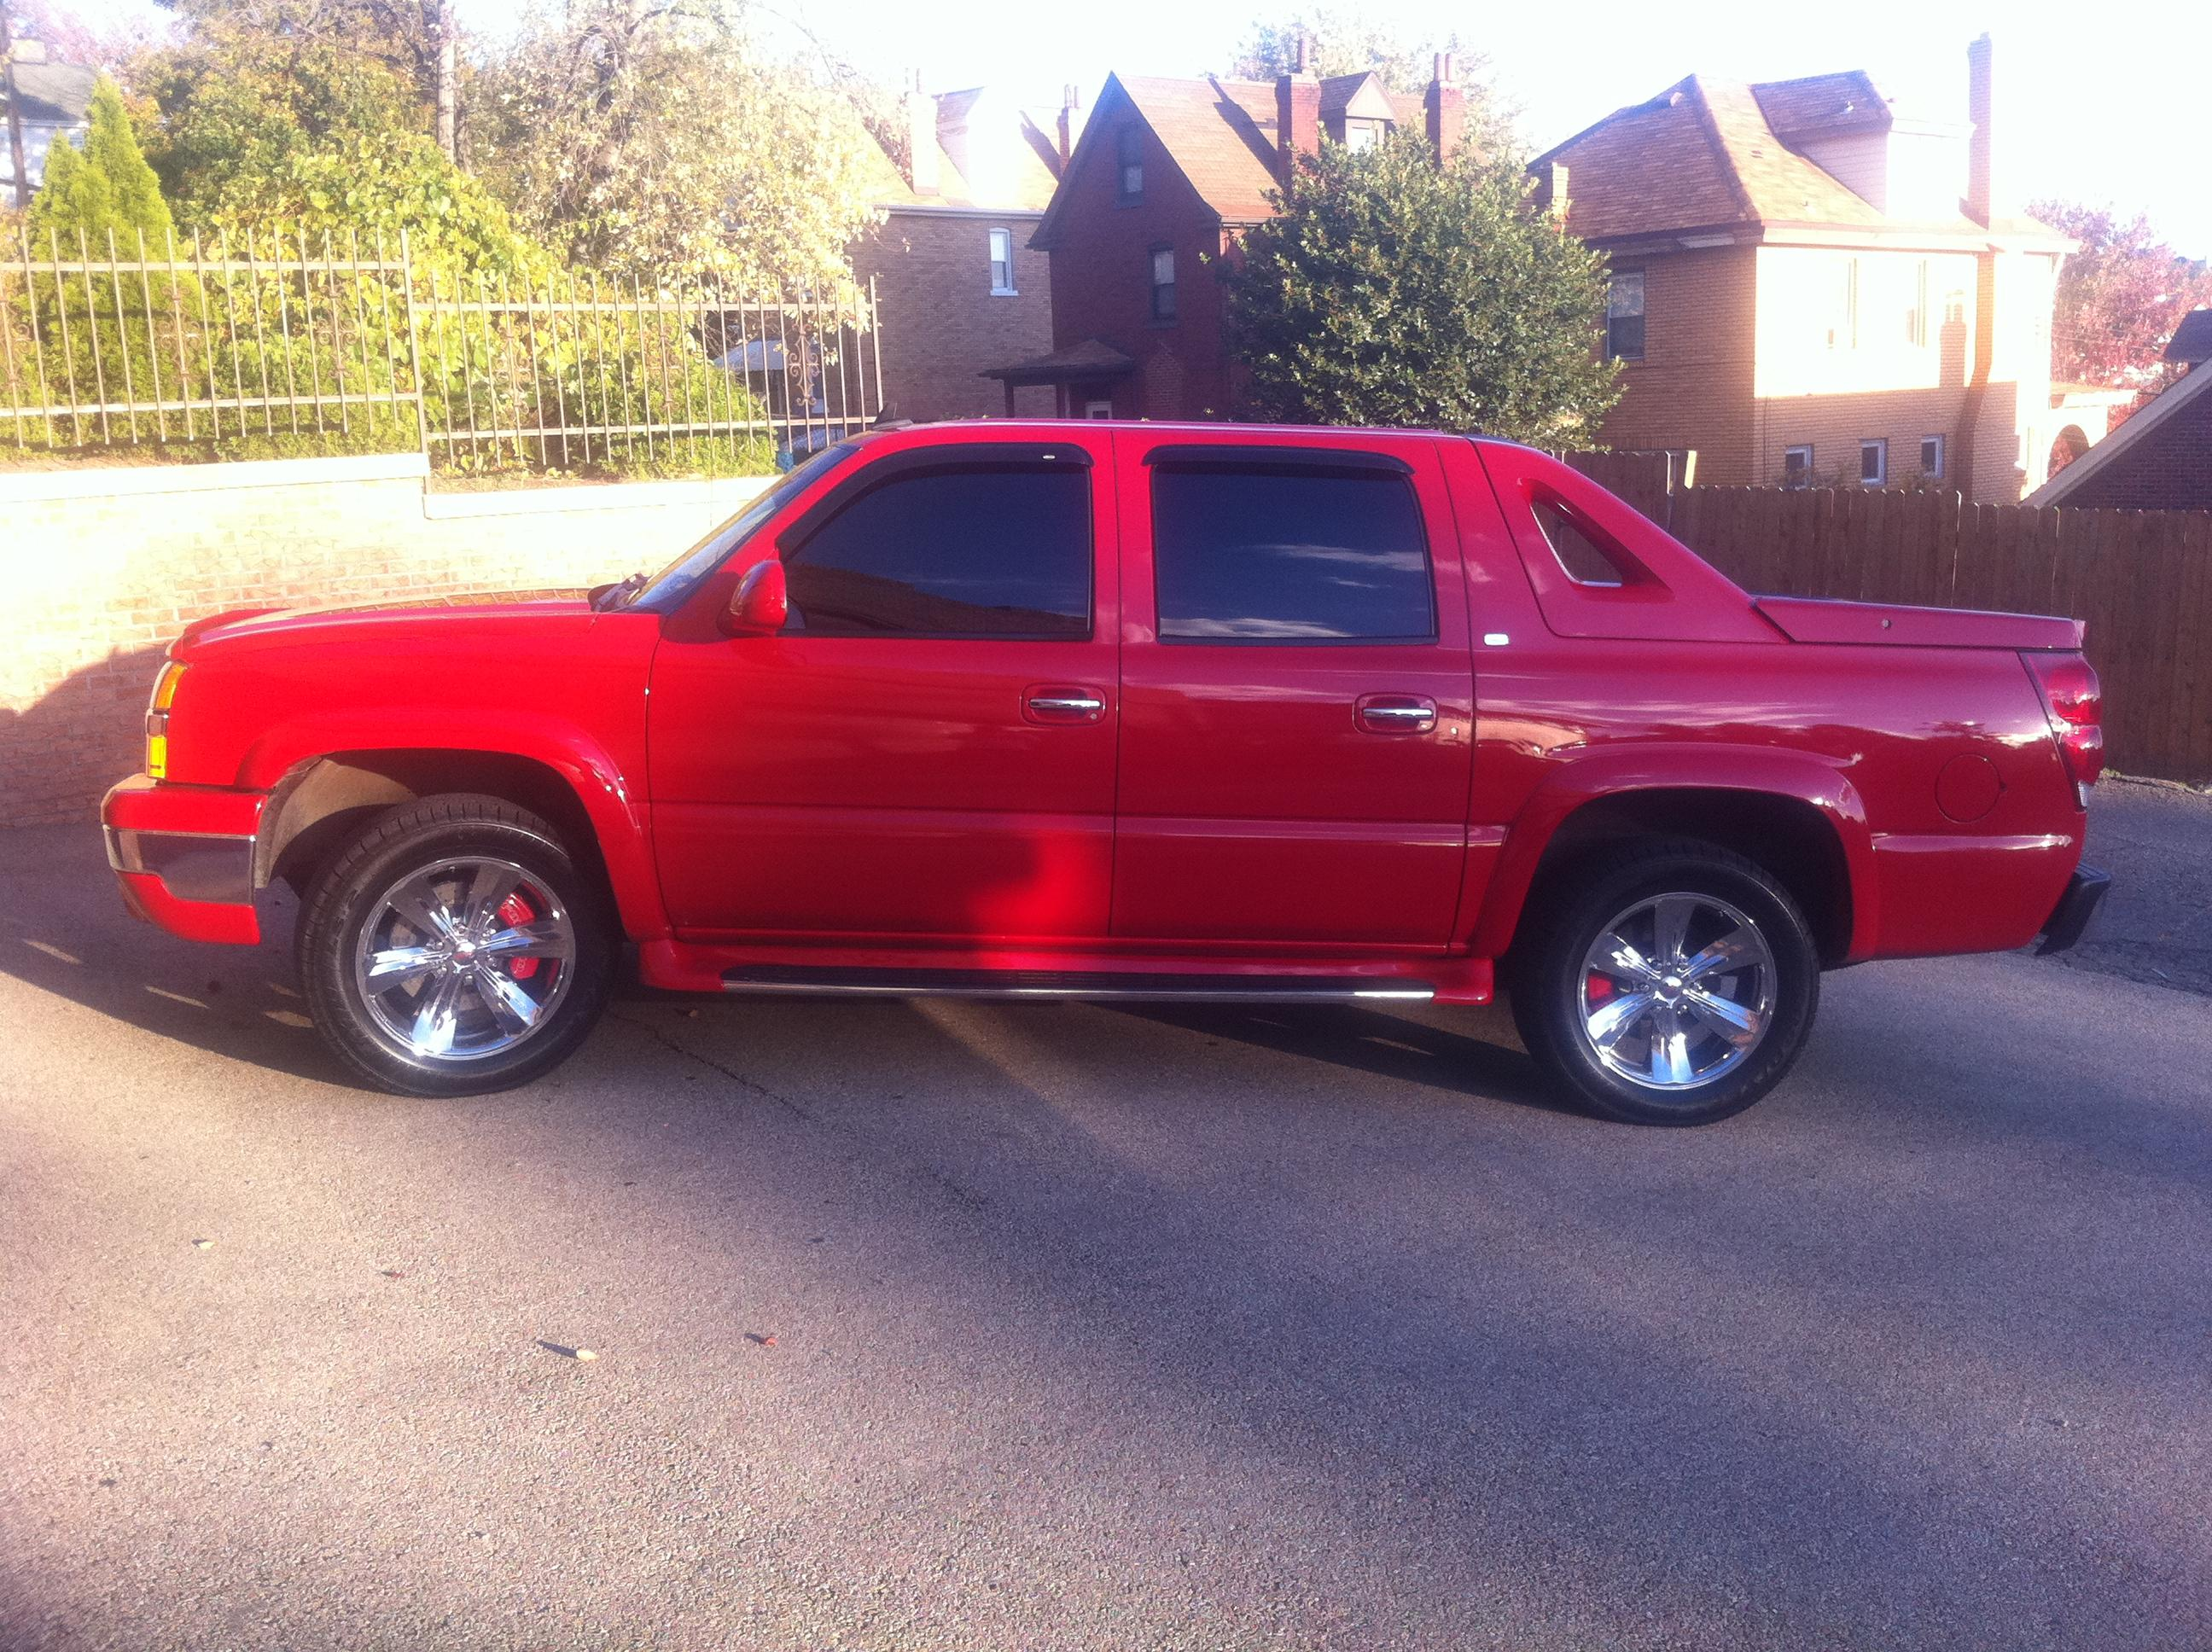 regencytruck 2006 Chevrolet Avalanche 14817339